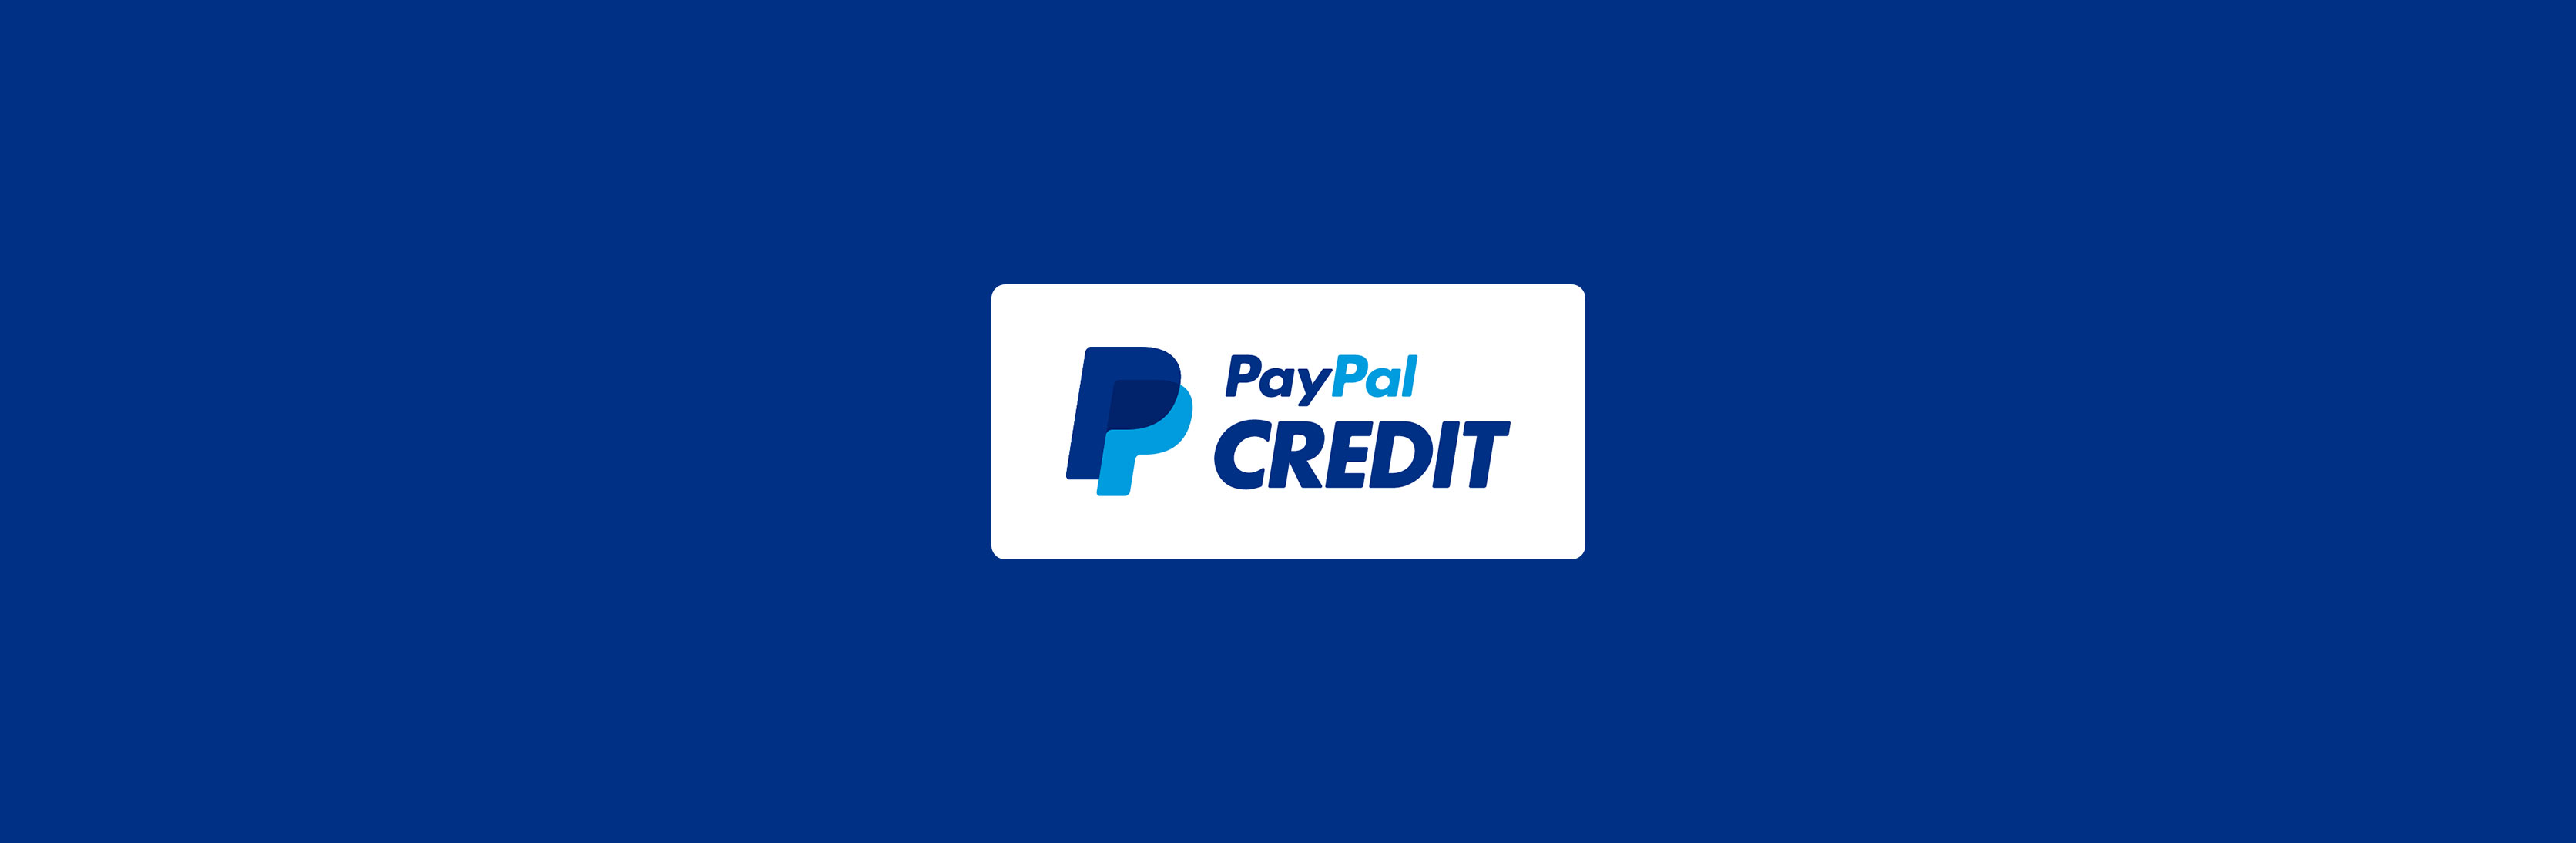 Introducing PayPal Credit to Braintree Merchants